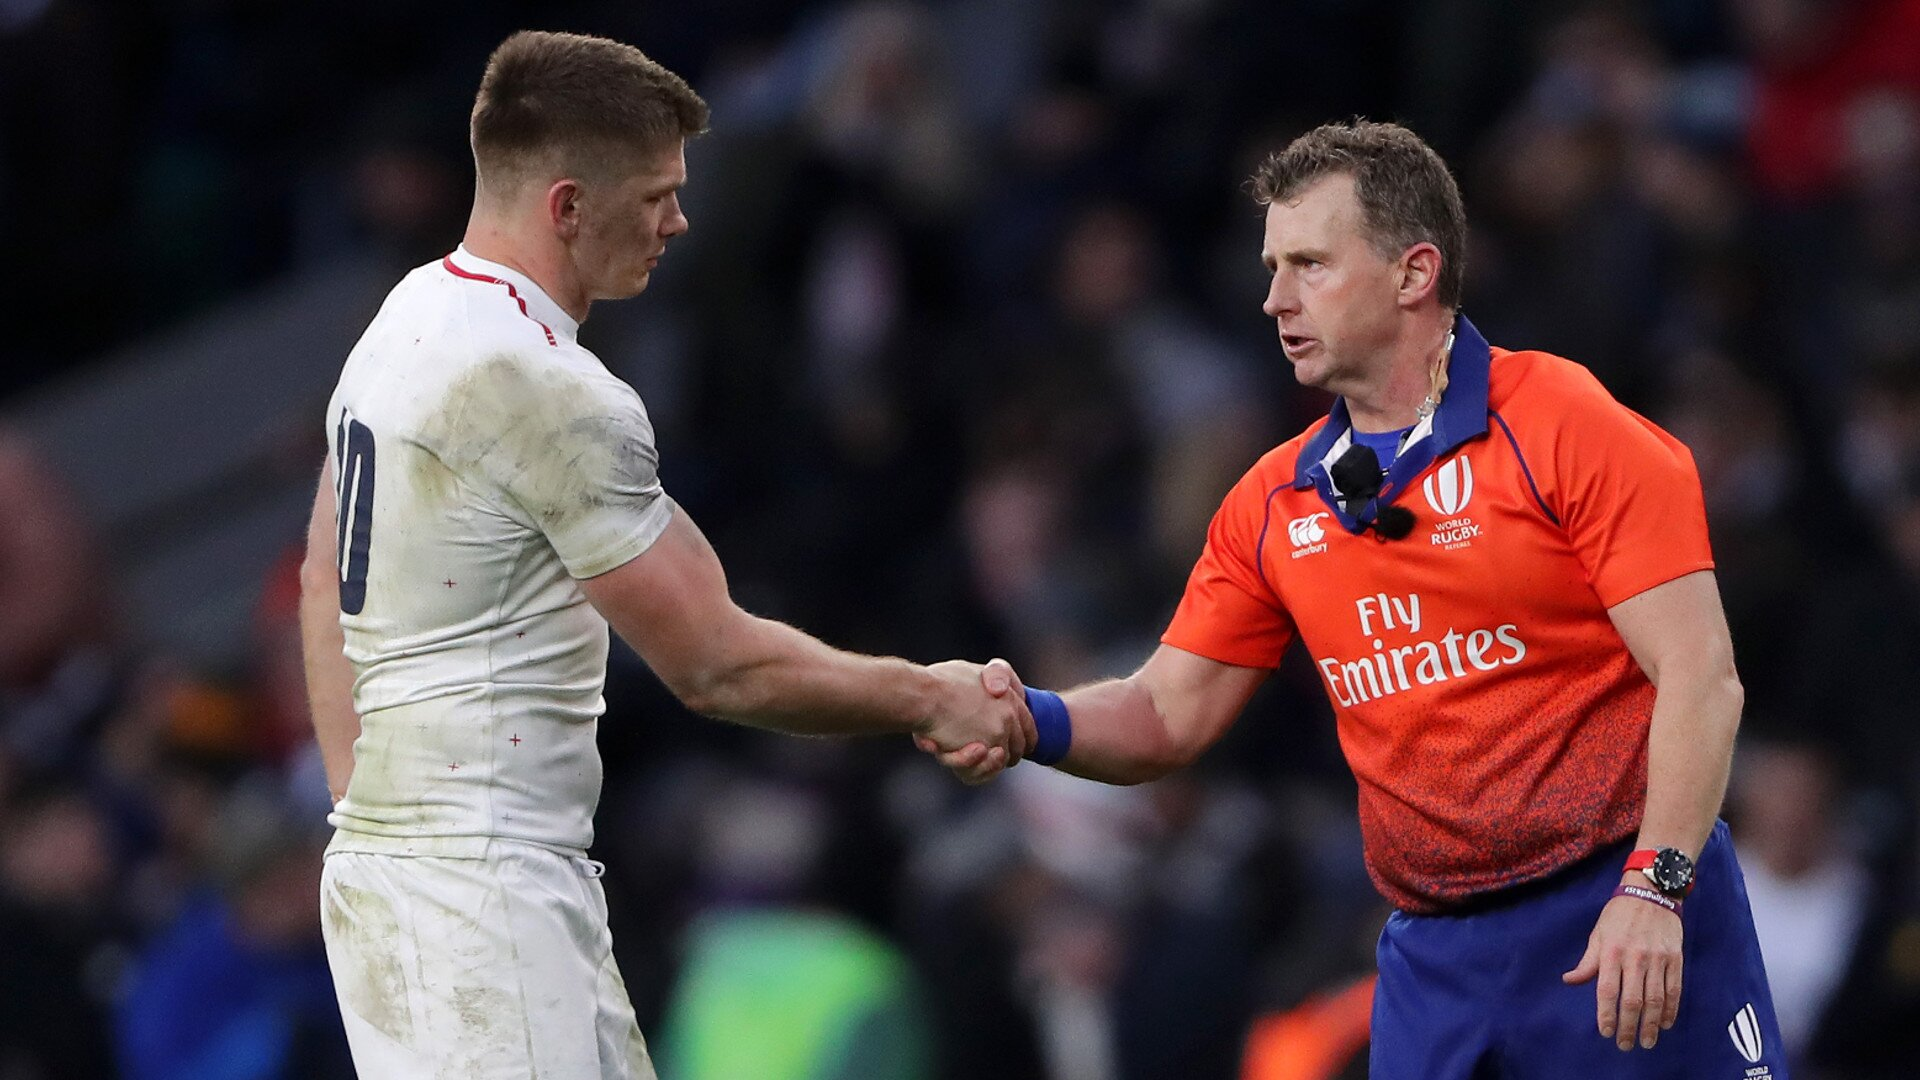 Nigel Owens' questionable handling of the Sinckler incident wasn't the only example of ref inconsistency this weekend